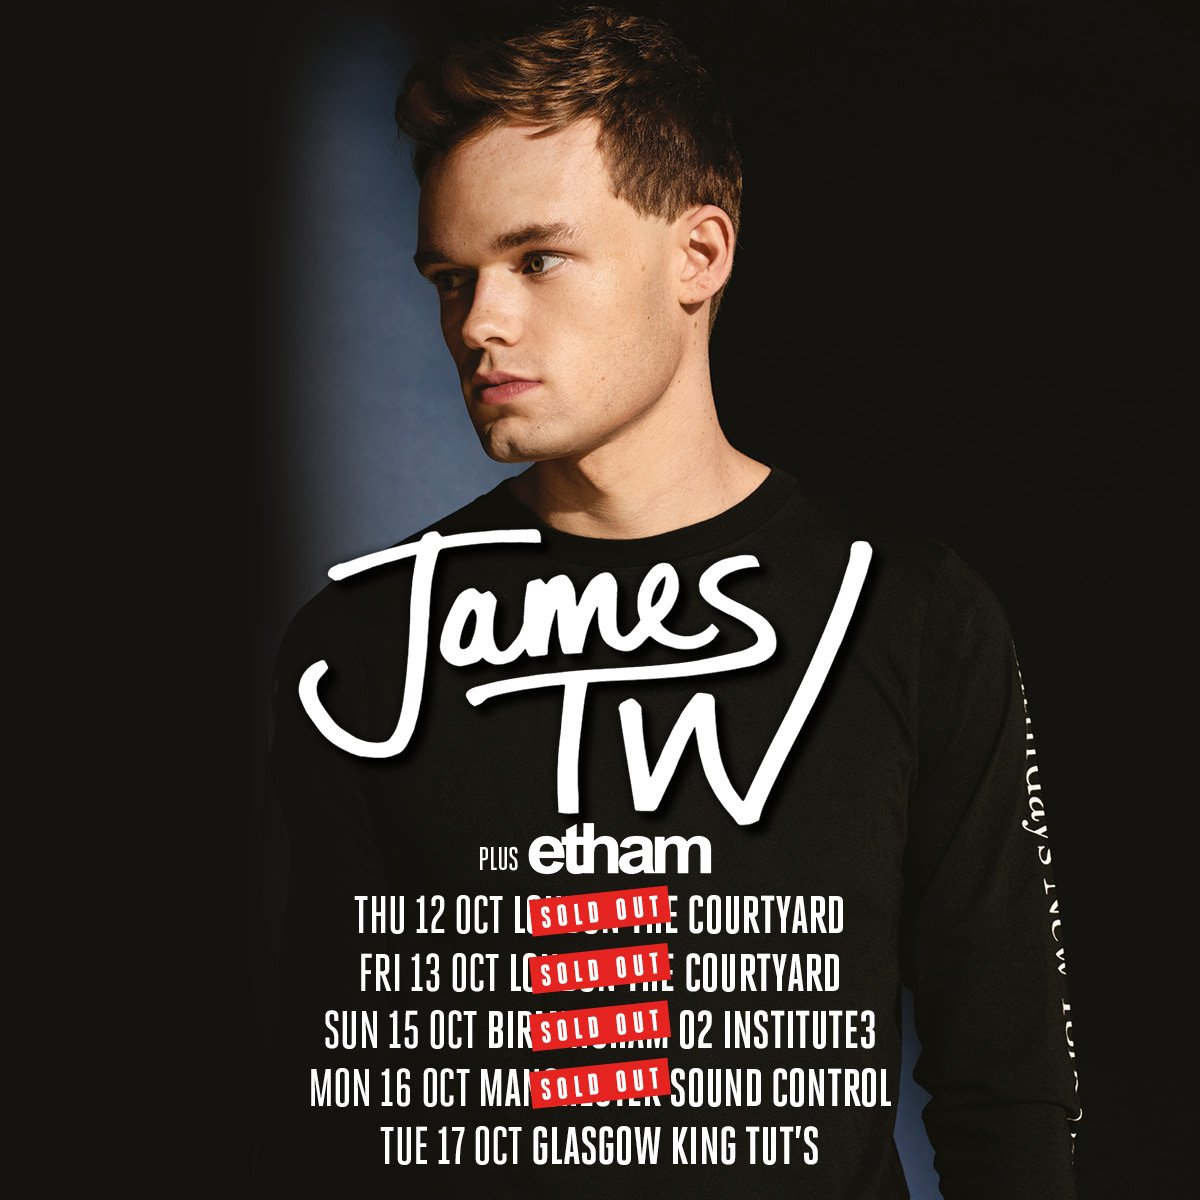 NEWS// 🚨 @ethammusic will be supporting @JamesTWmusic on his tour this Oct! https://t.co/dXSih4TrGi